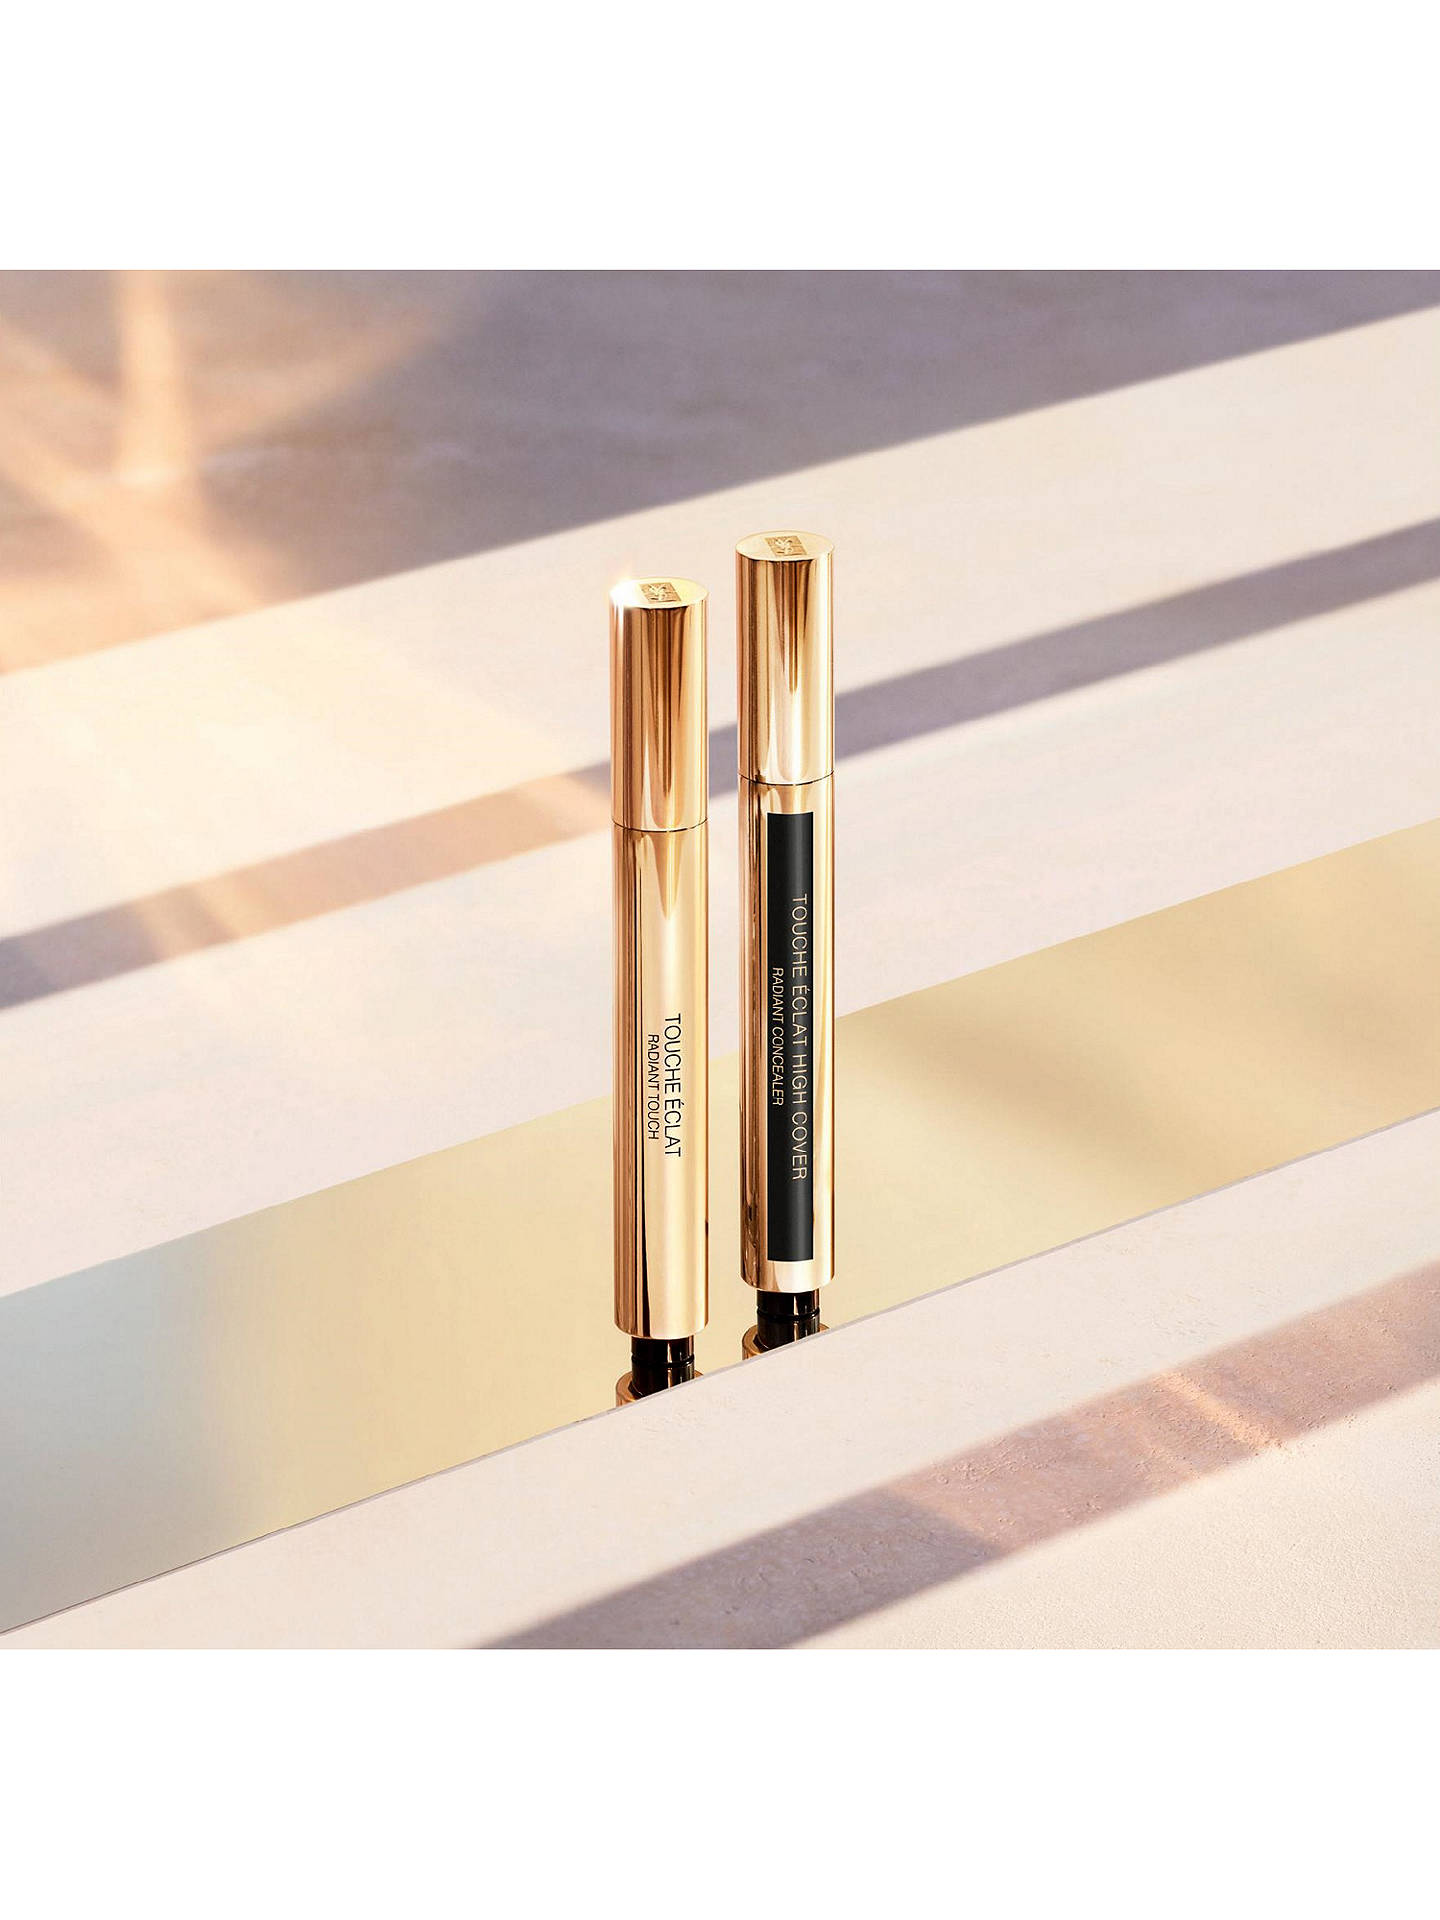 Buy Yves Saint Laurent Touche Eclat Illuminating Pen, 1 Luminous Radiance Online at johnlewis.com